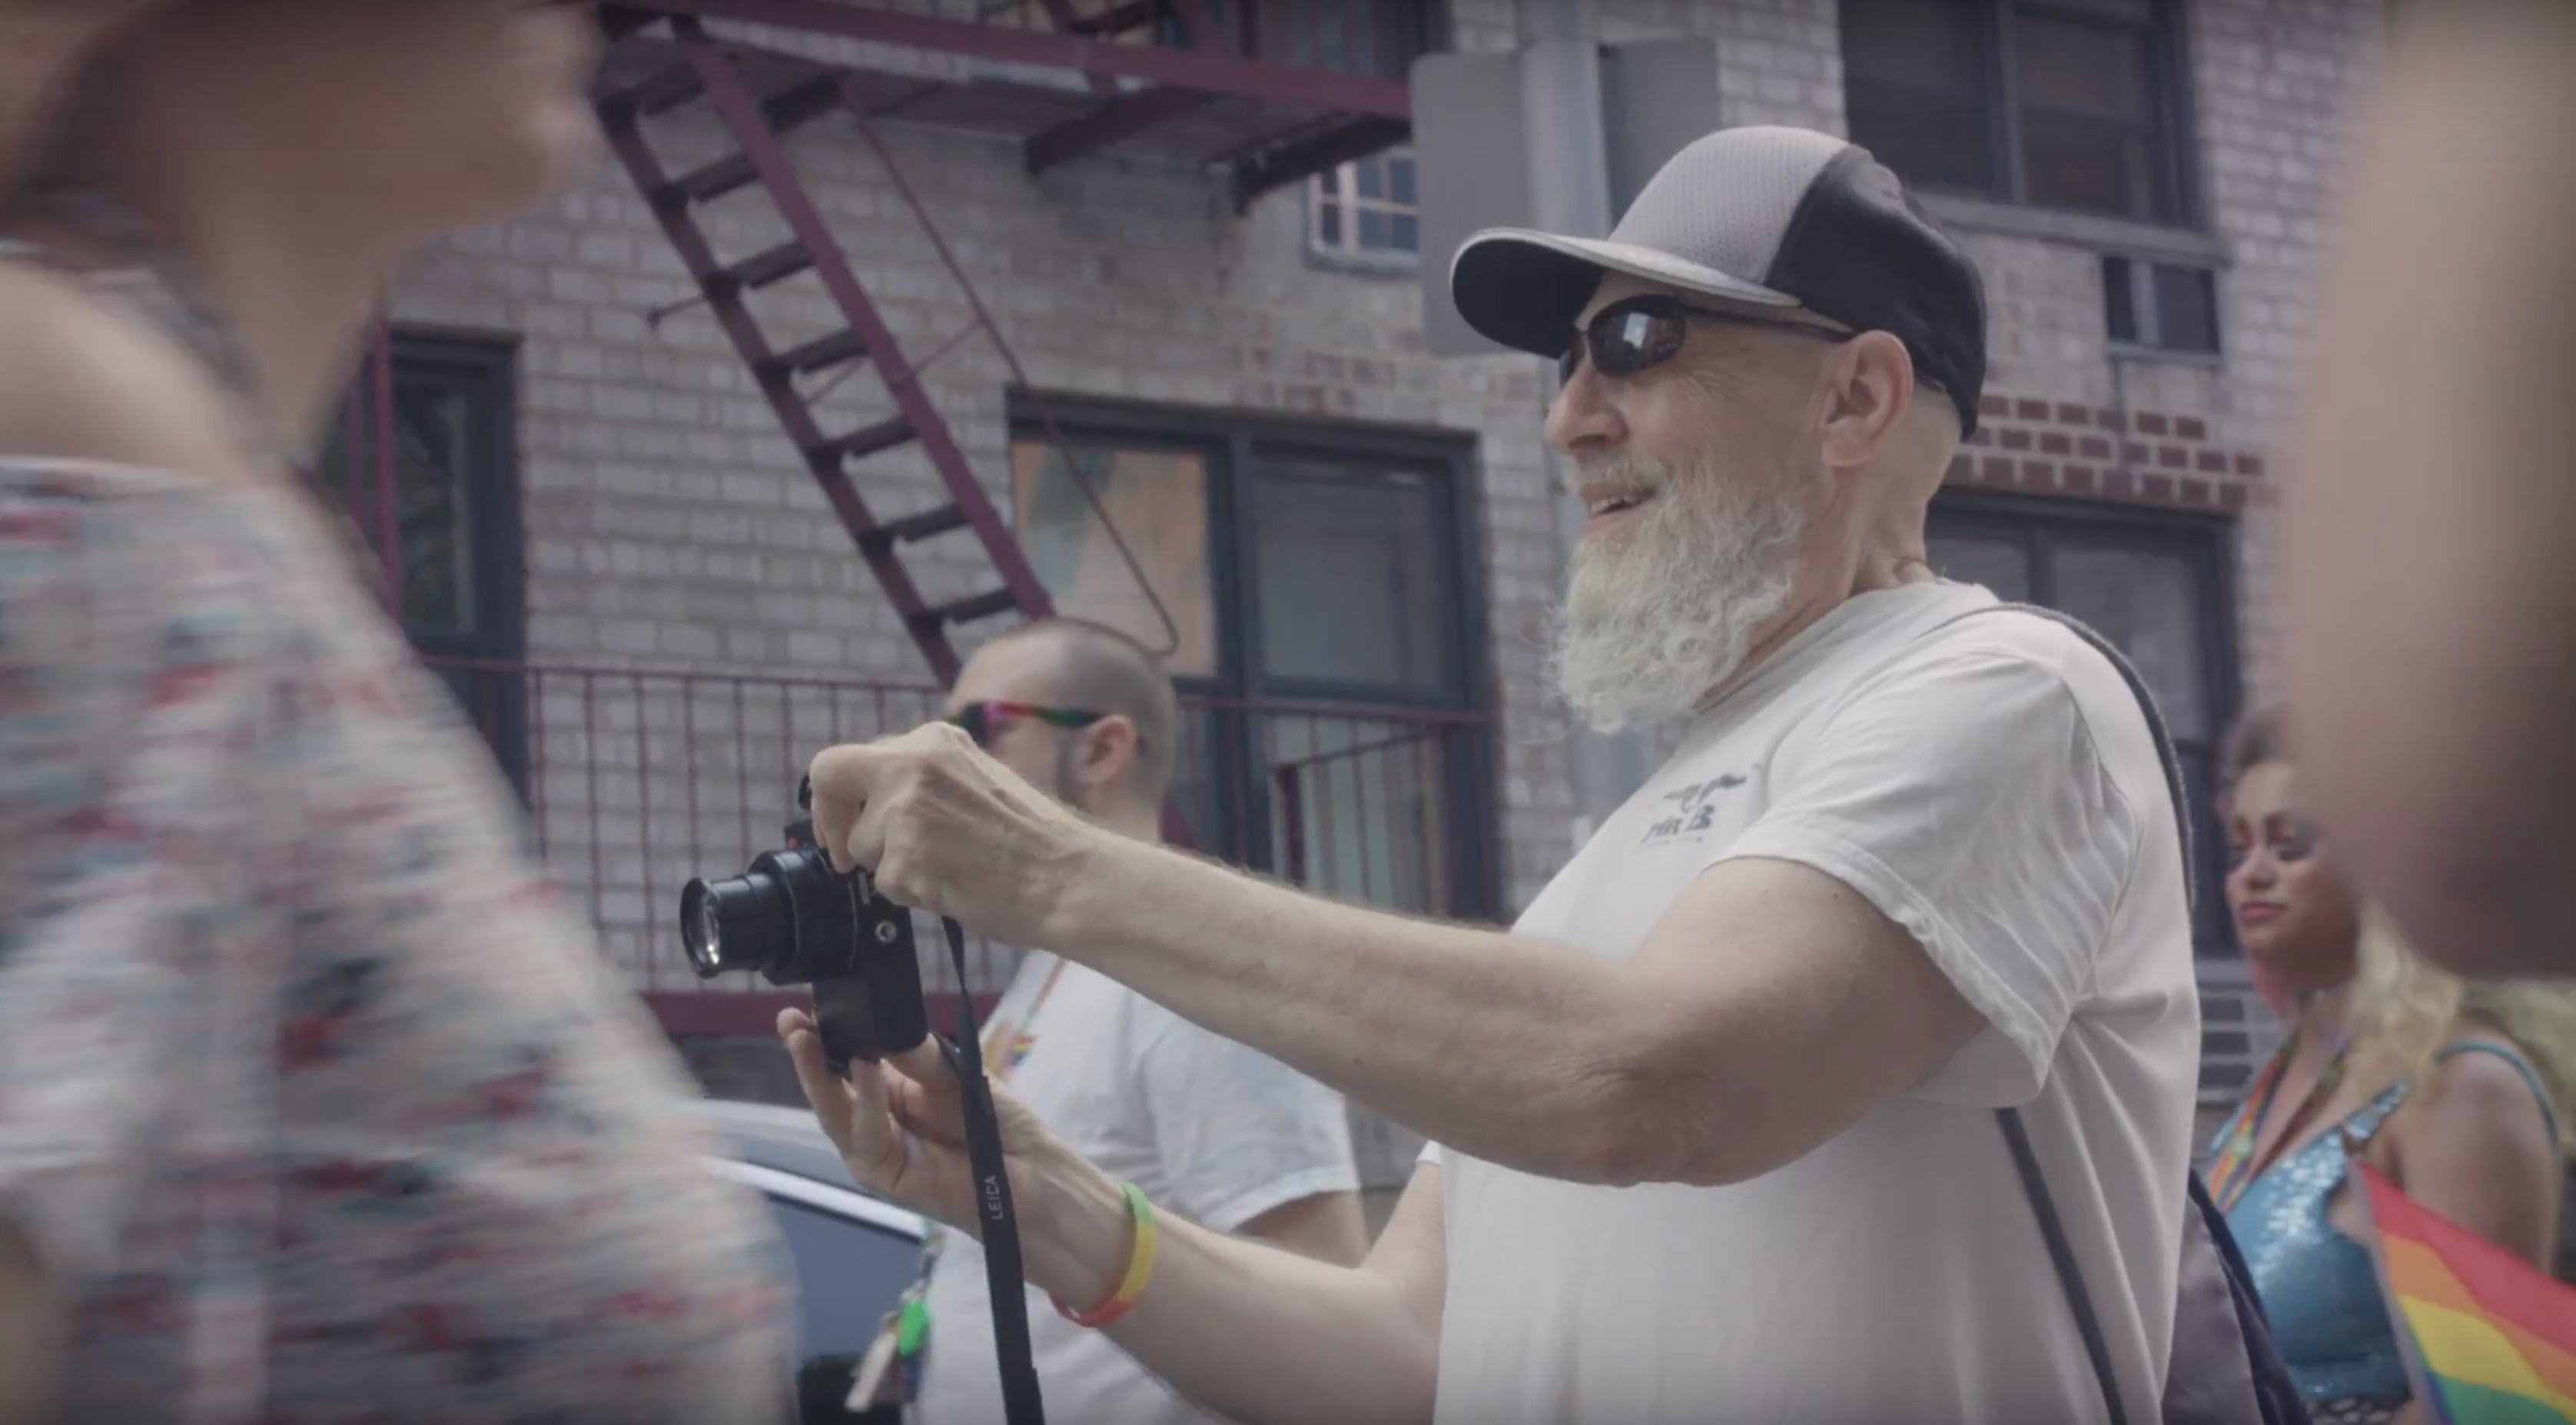 How One Man's 'Innocent Photo Snapping' Became A Massive Archive Of New York Gay Life